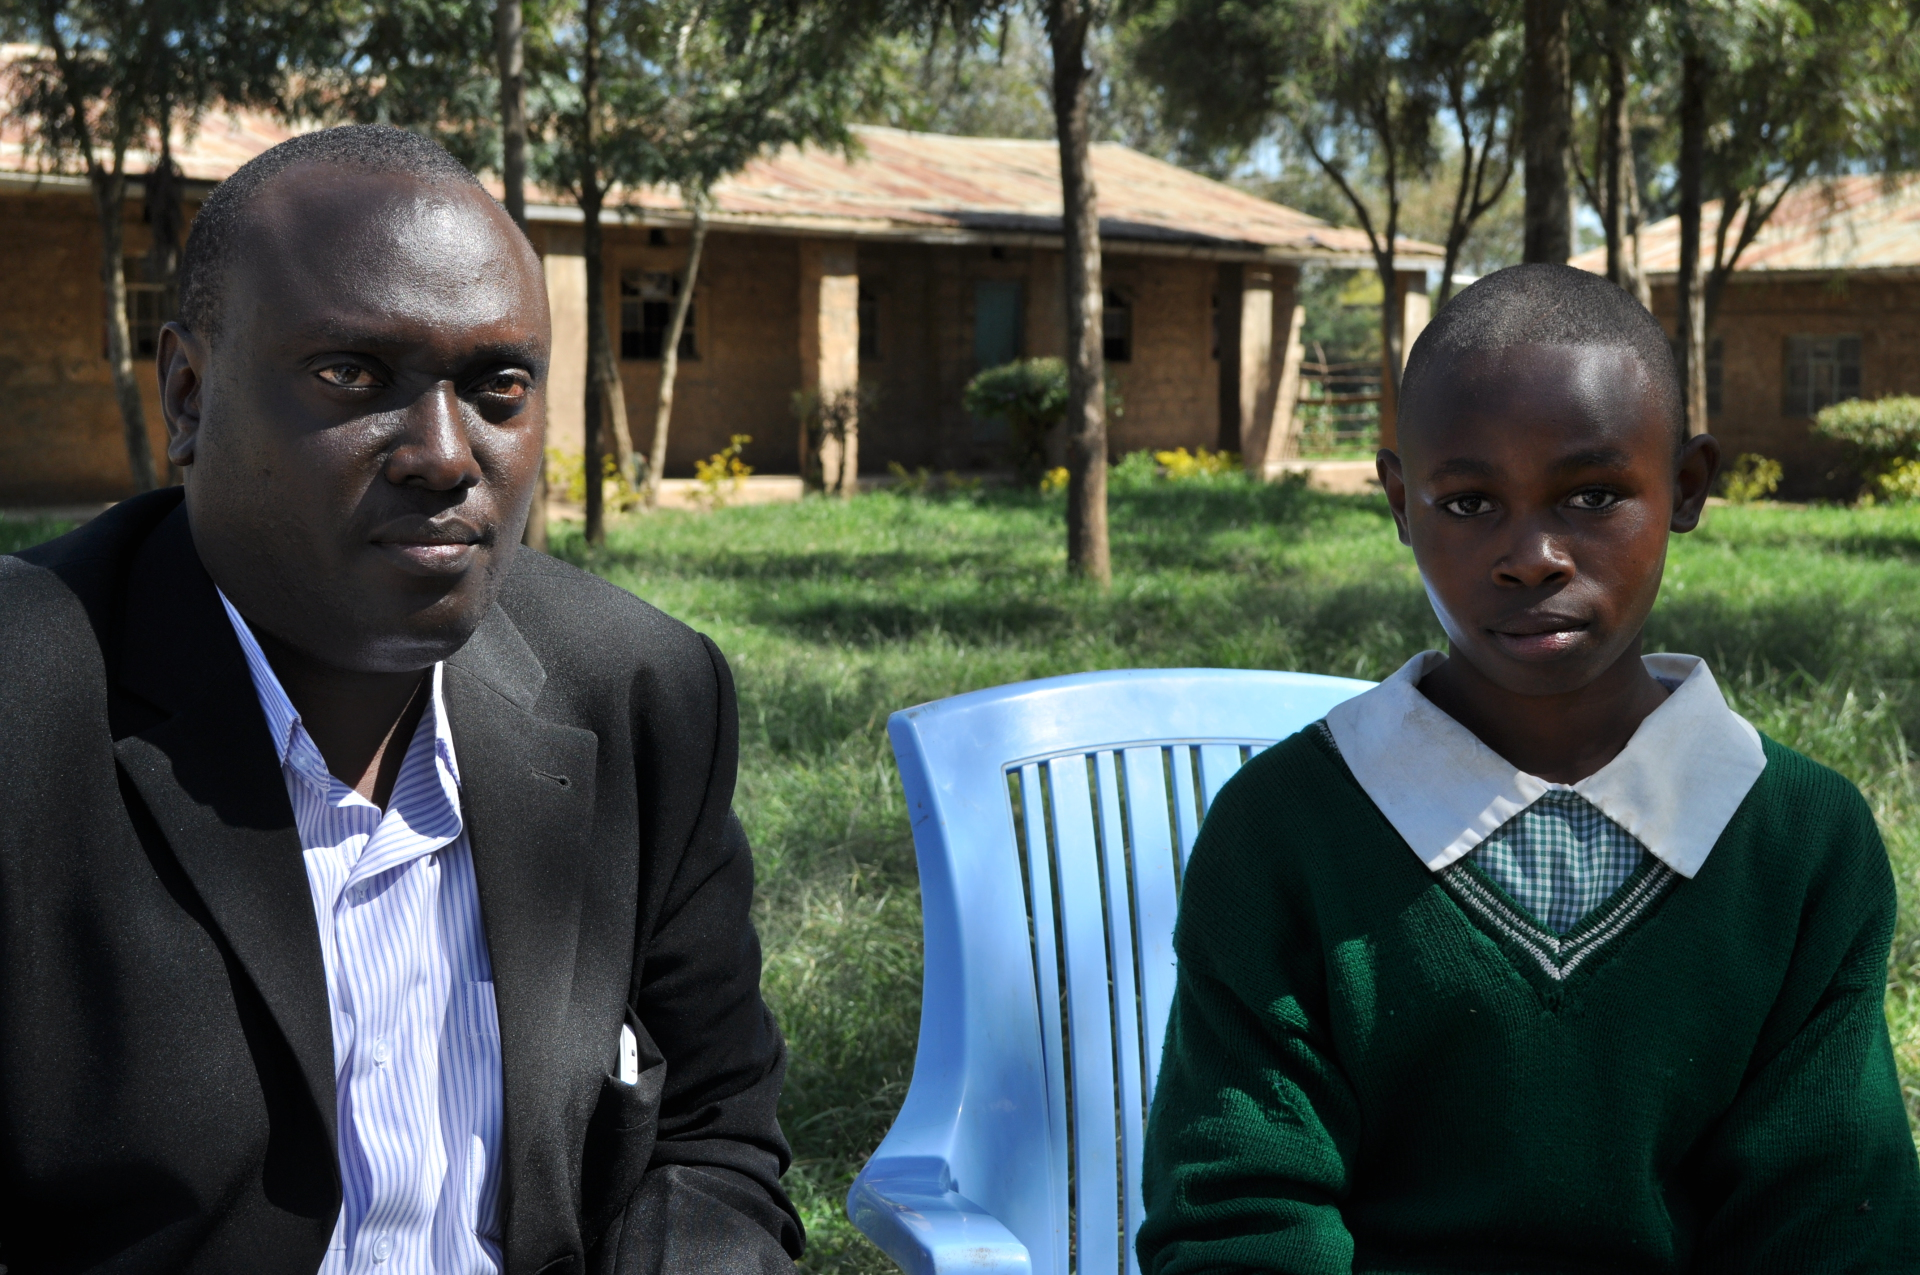 ASN Upendo Village Child Welfare Officer, Samuel Maina, with sponsored student at Nyondia Primary School.